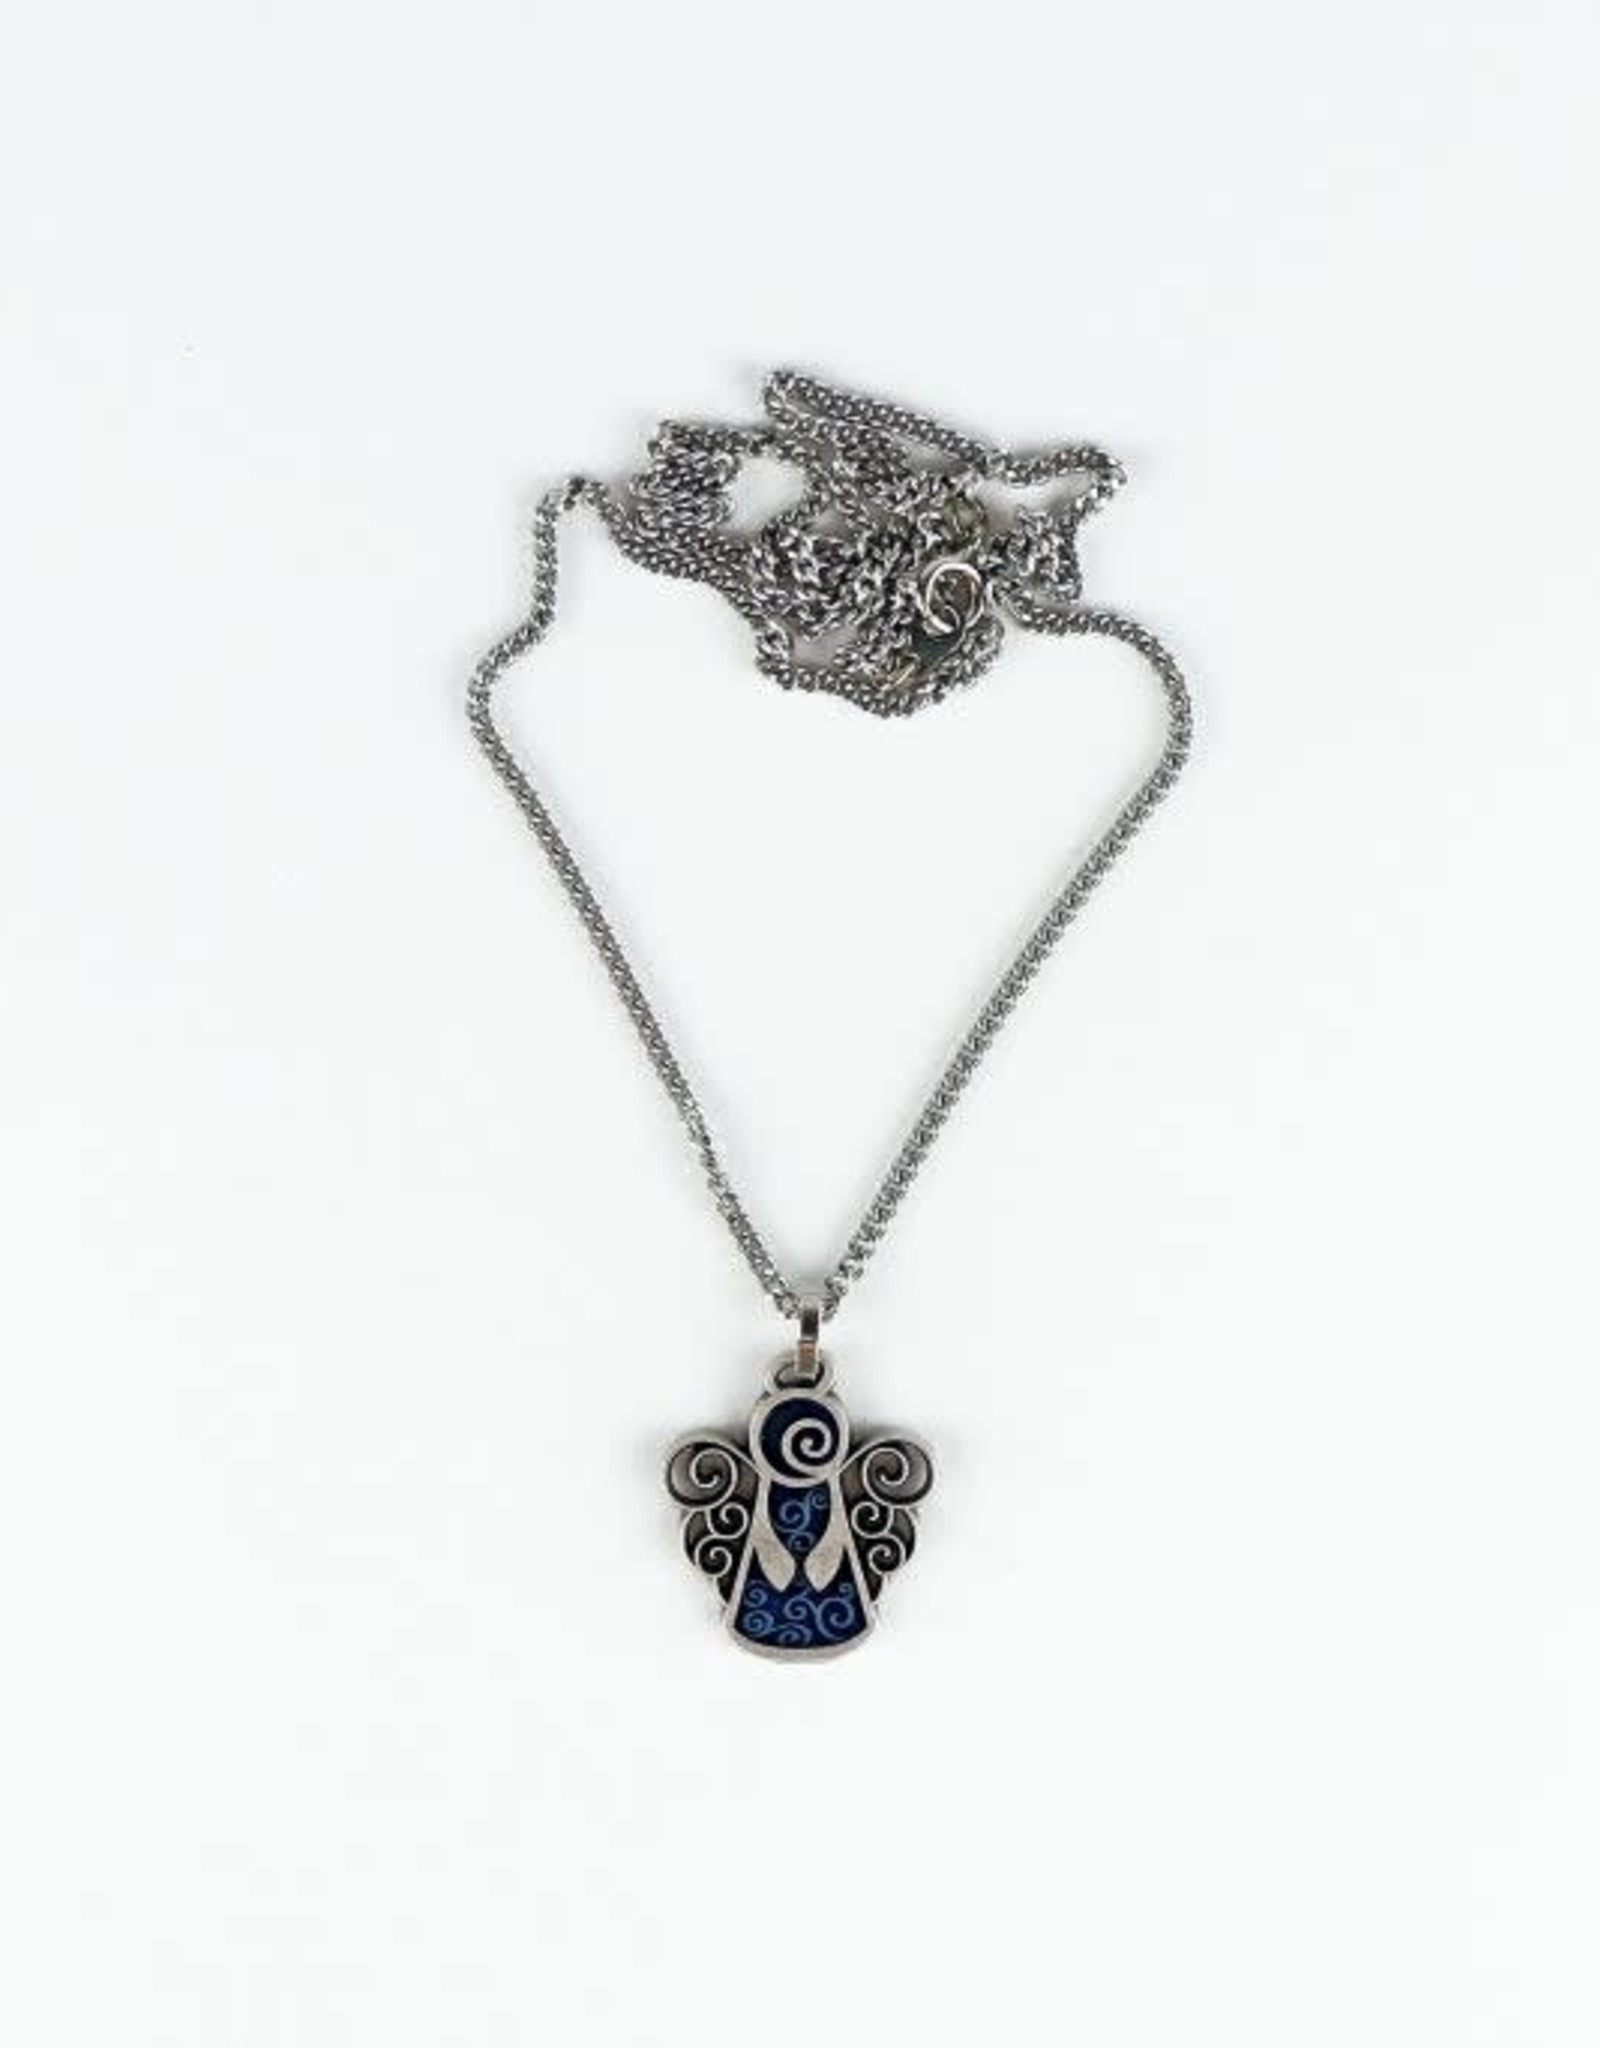 Blue Enamel Angel pendant with chain